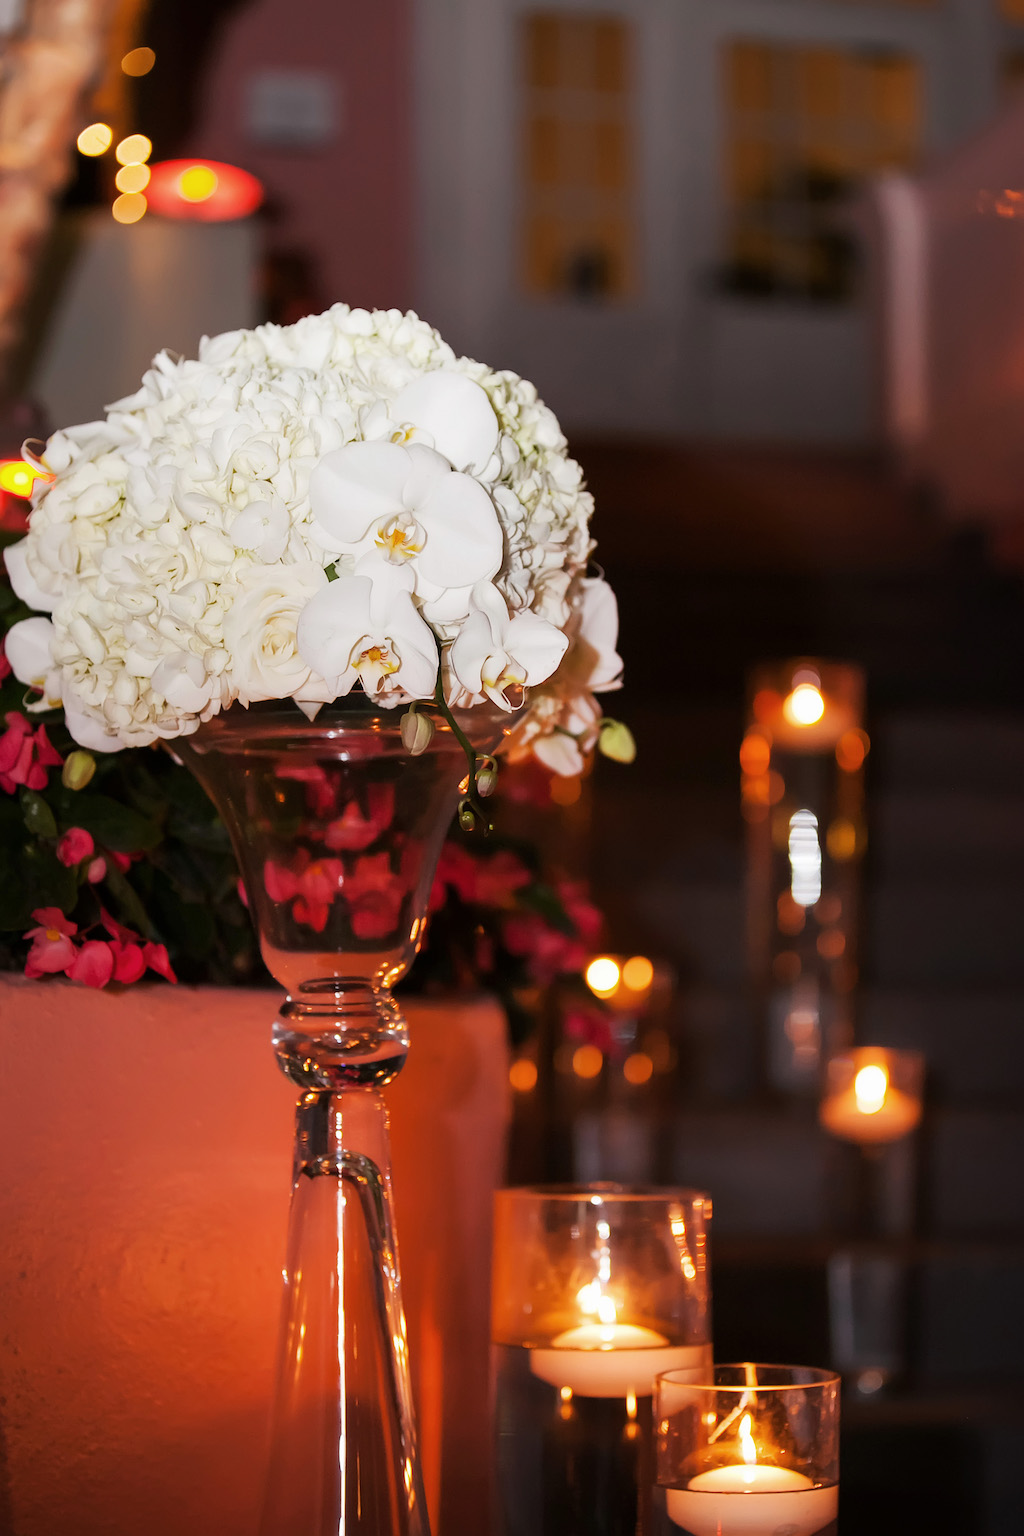 Outdoor Garden Courtyard Wedding Ceremony Decor with White Hydrangea and Orchid Flowers in Tall Glass Vase with Floating Votive Candles in Hurricane Lanters